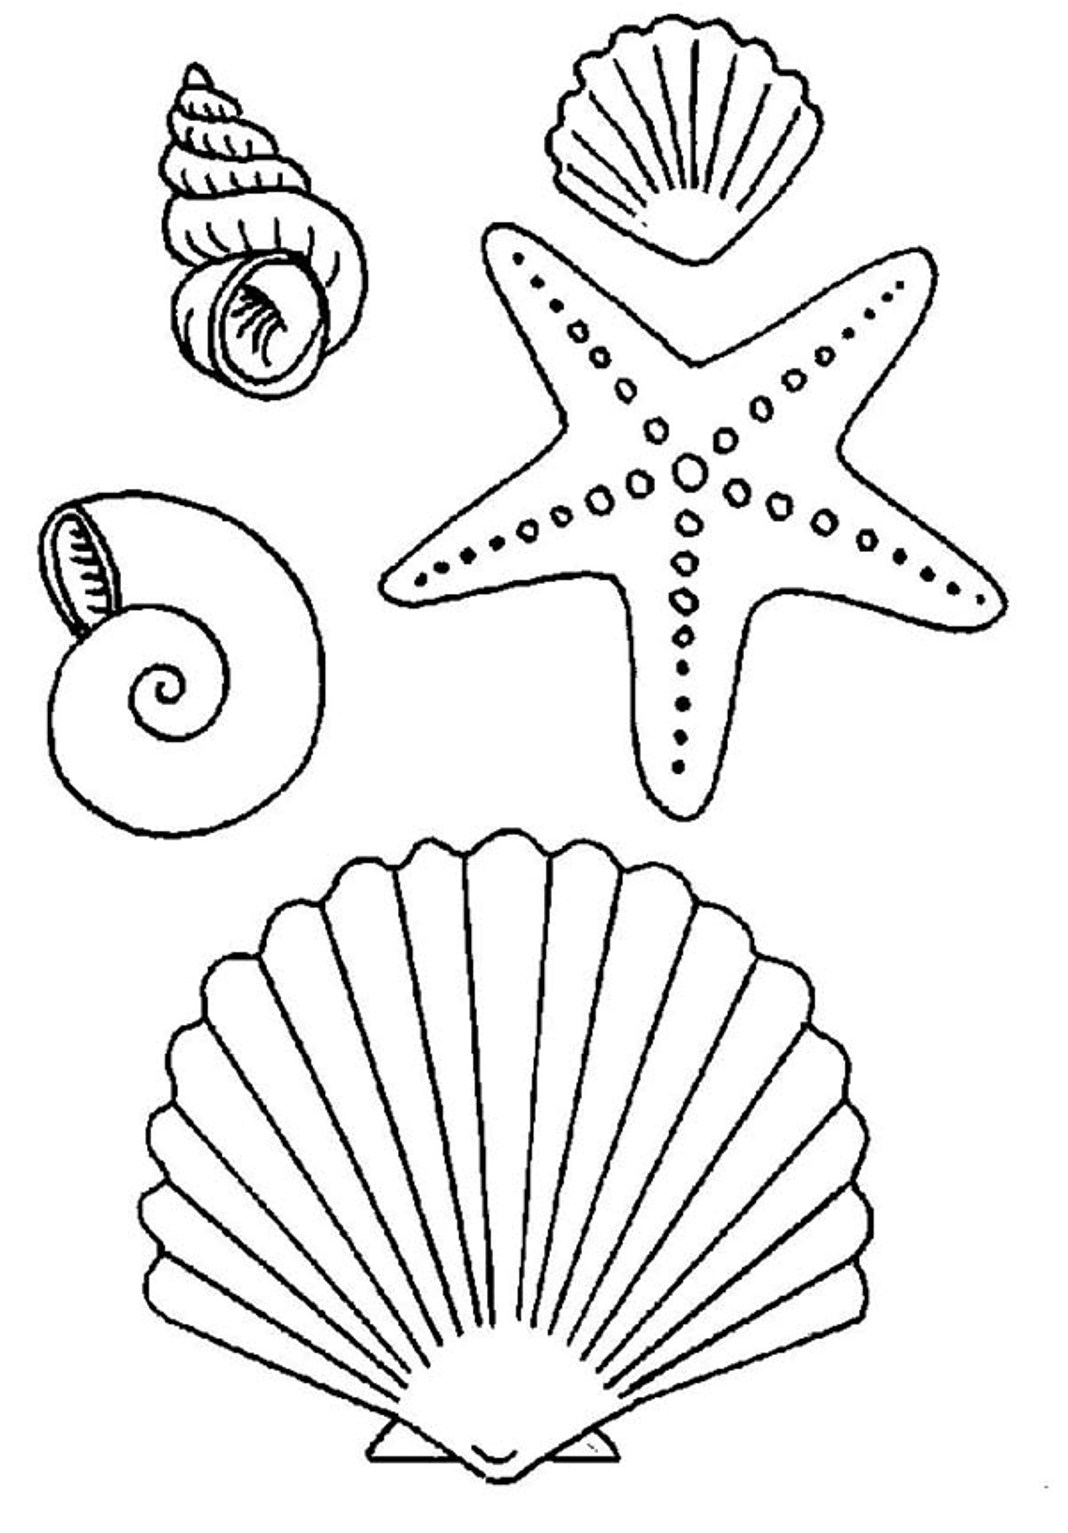 Drawn starfish cute Starfish coloring and pages seashell